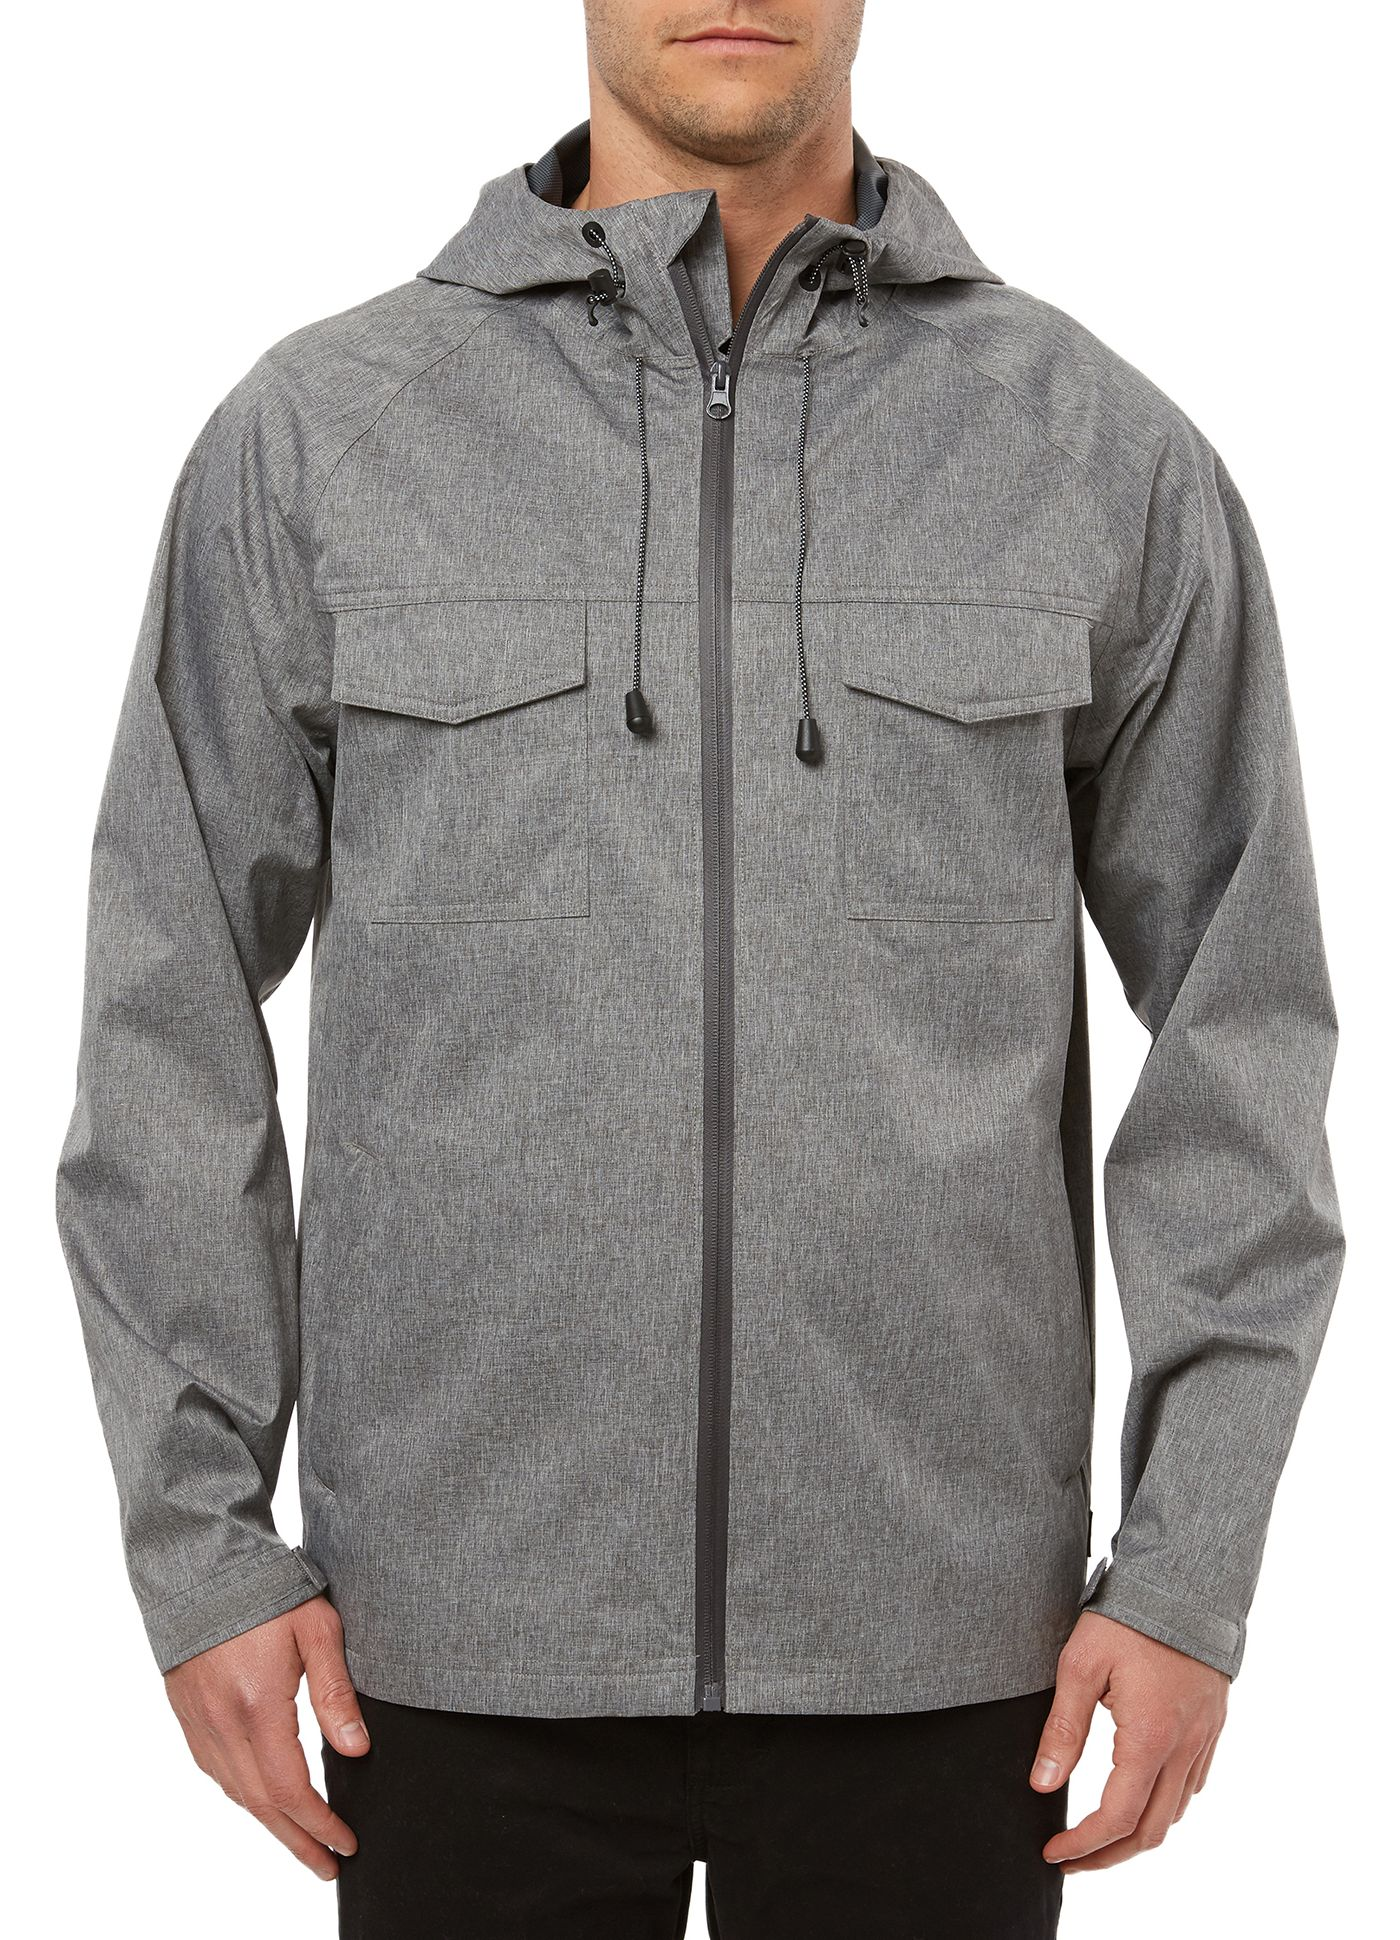 O' Neill Men's Caspar Parka Full Zip Jacket